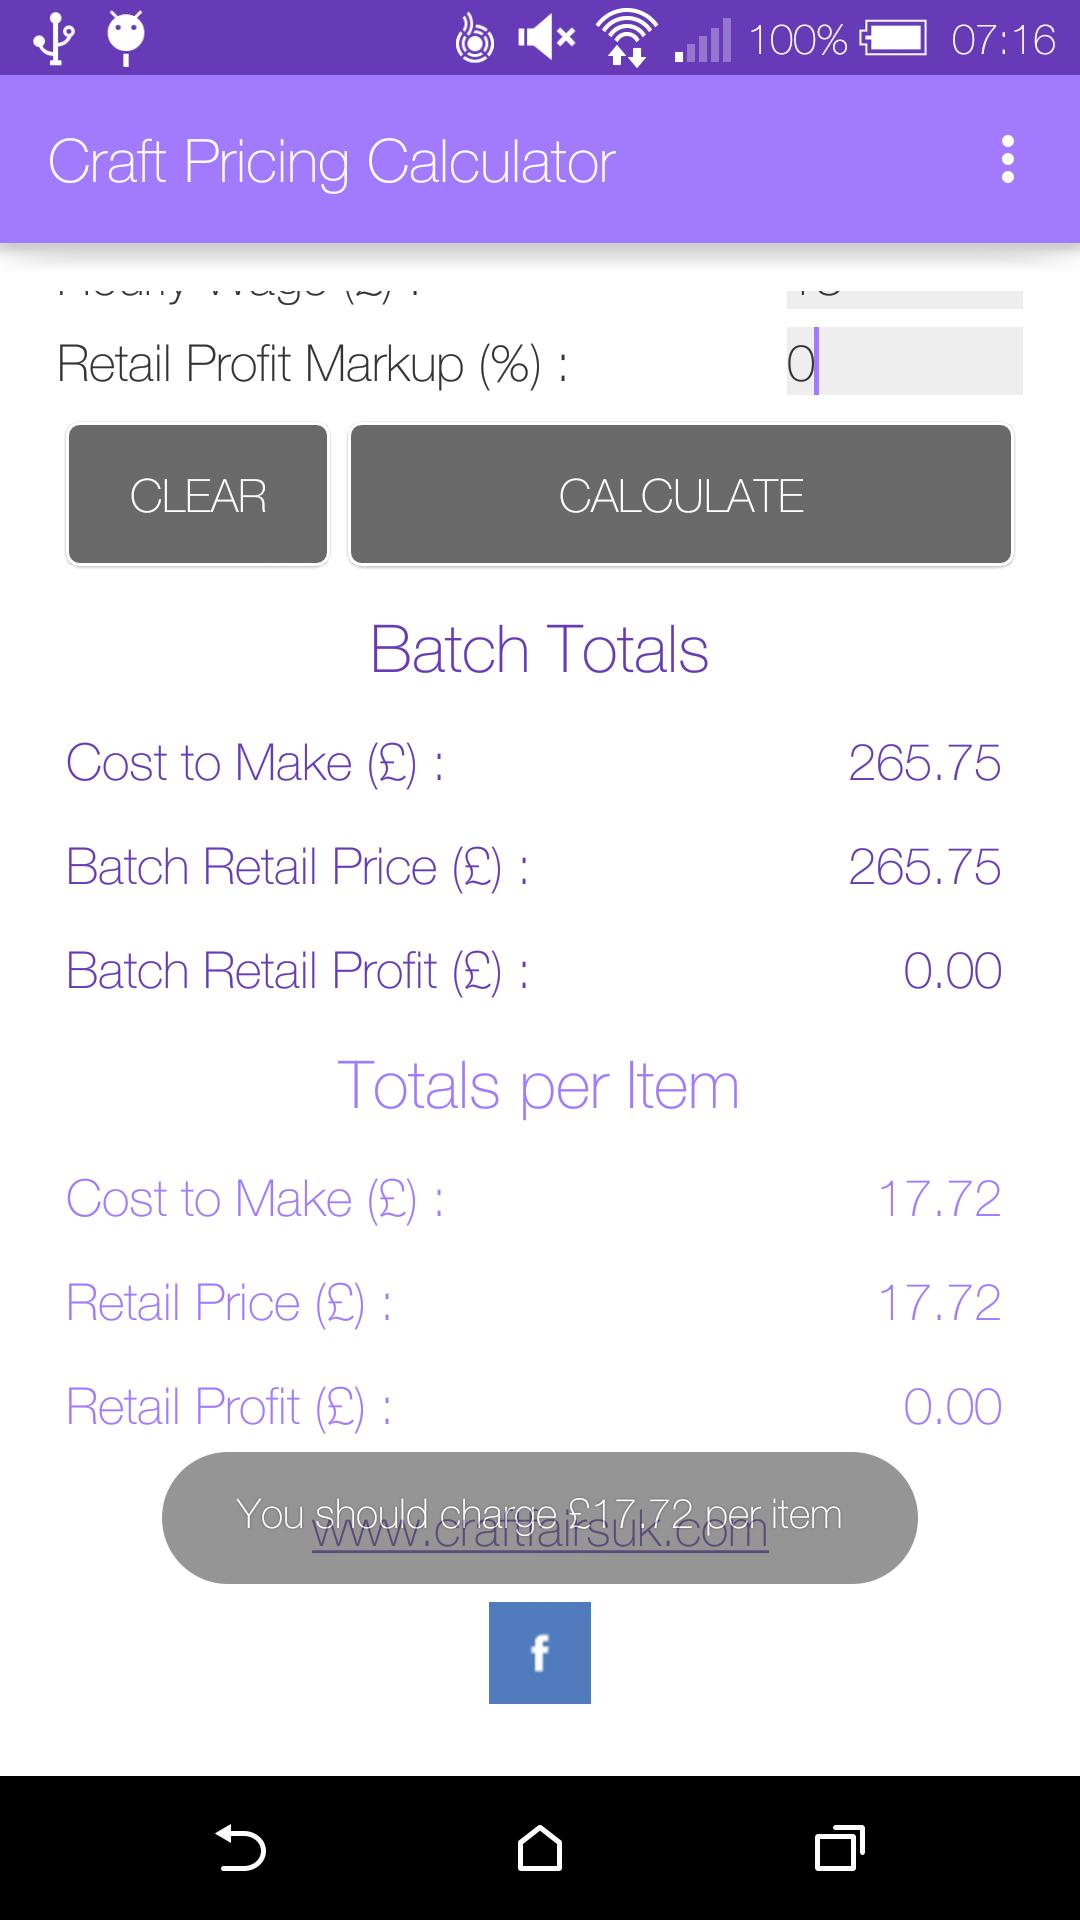 Craft Pricing Calculator for Android - APK Download